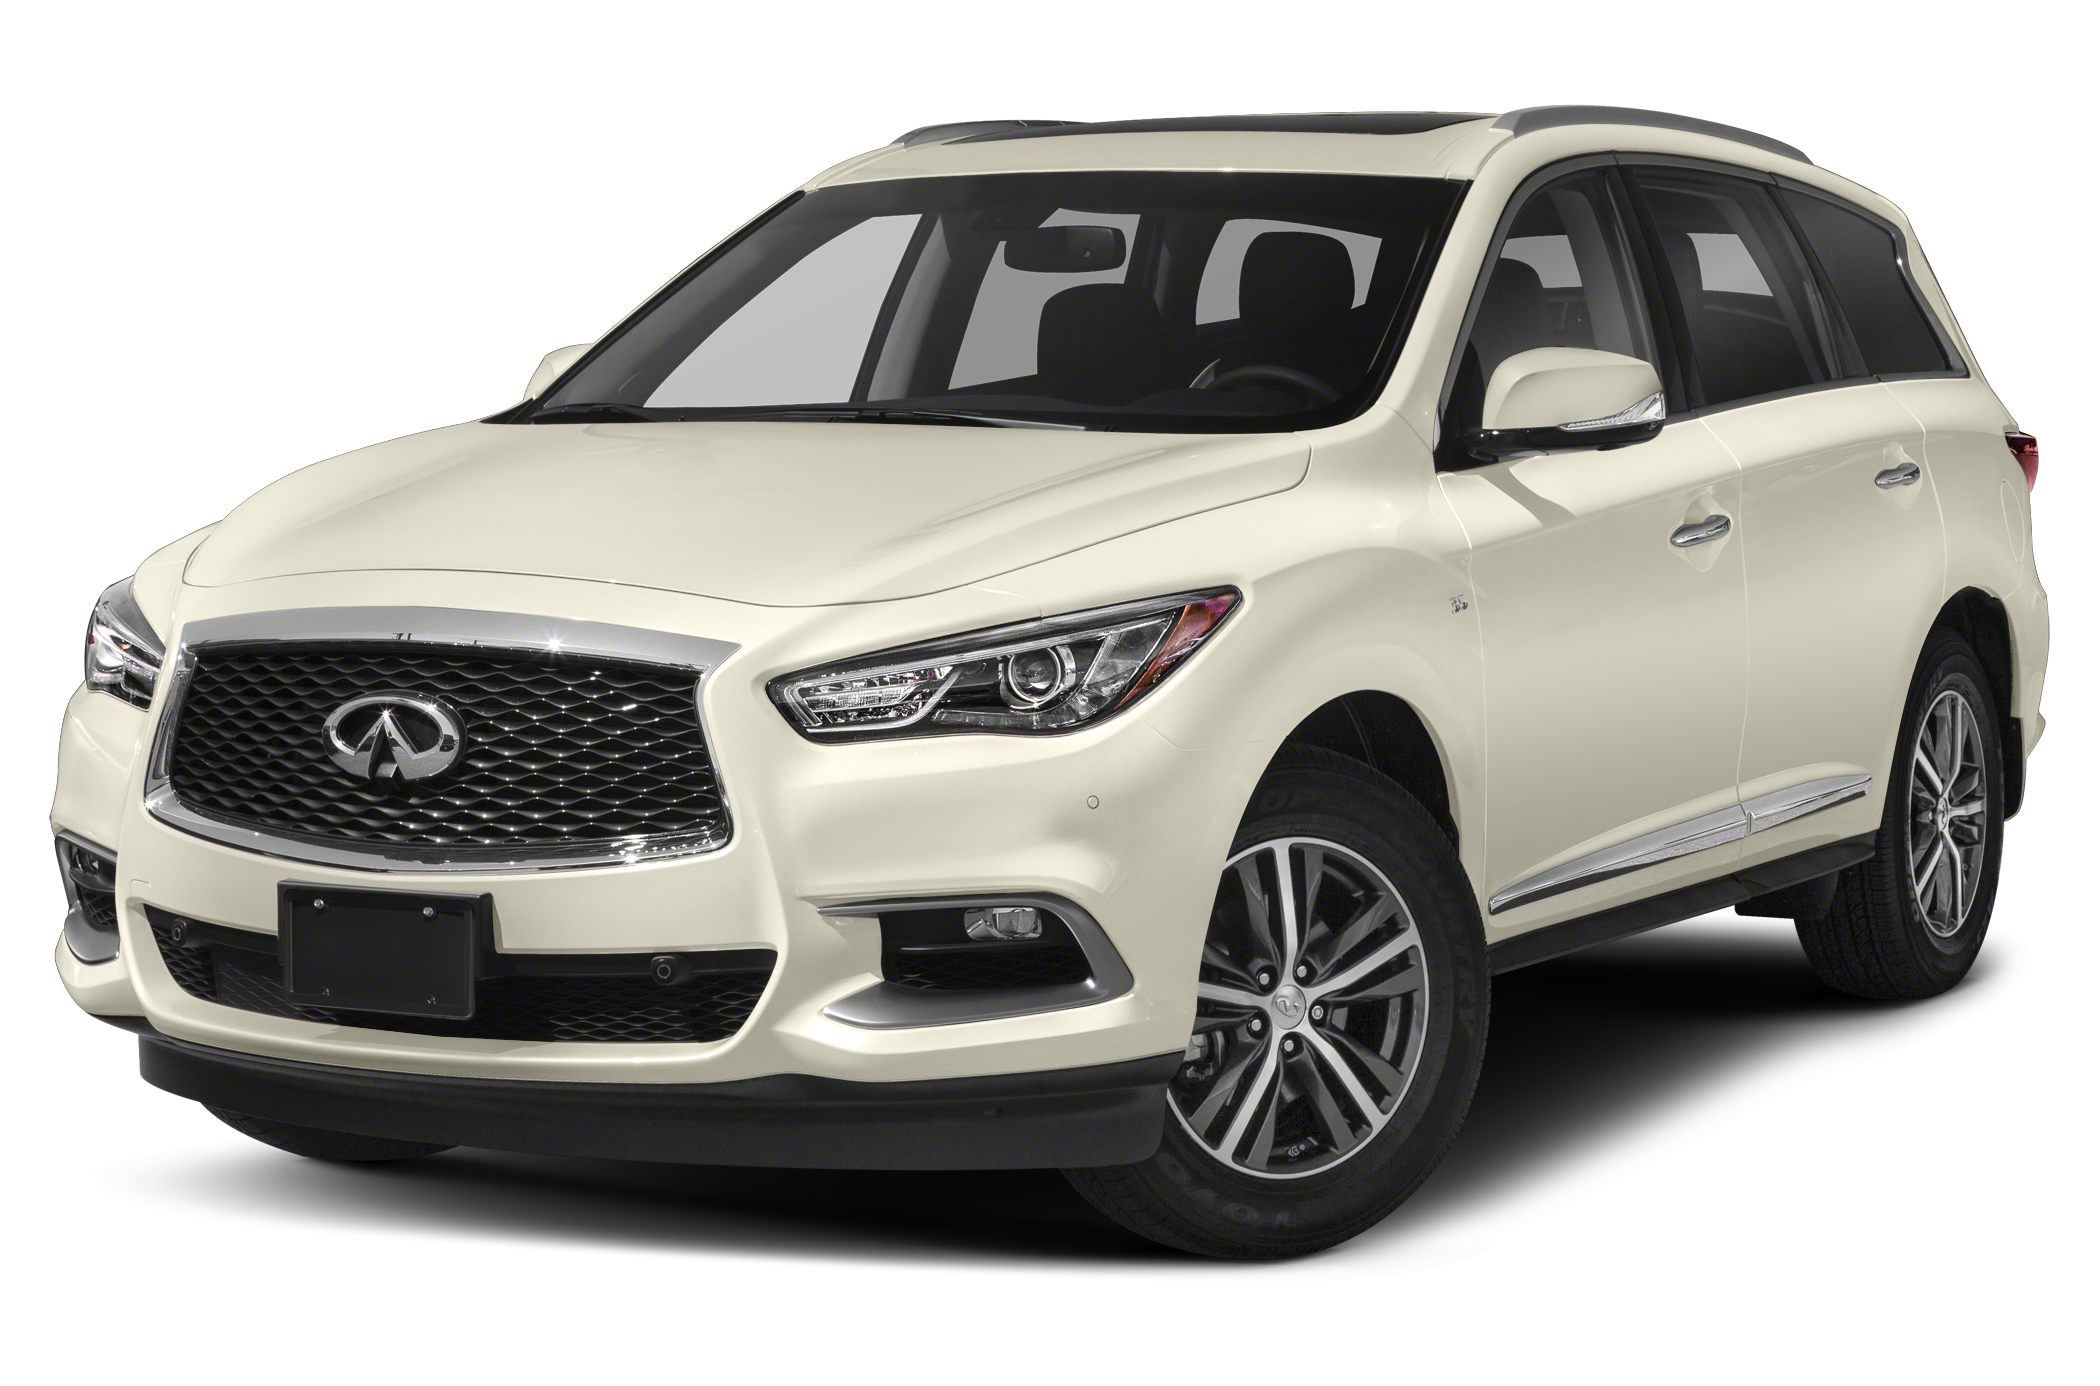 2014 infiniti qx60 hybrid new york 2013 photo gallery autoblog. Black Bedroom Furniture Sets. Home Design Ideas